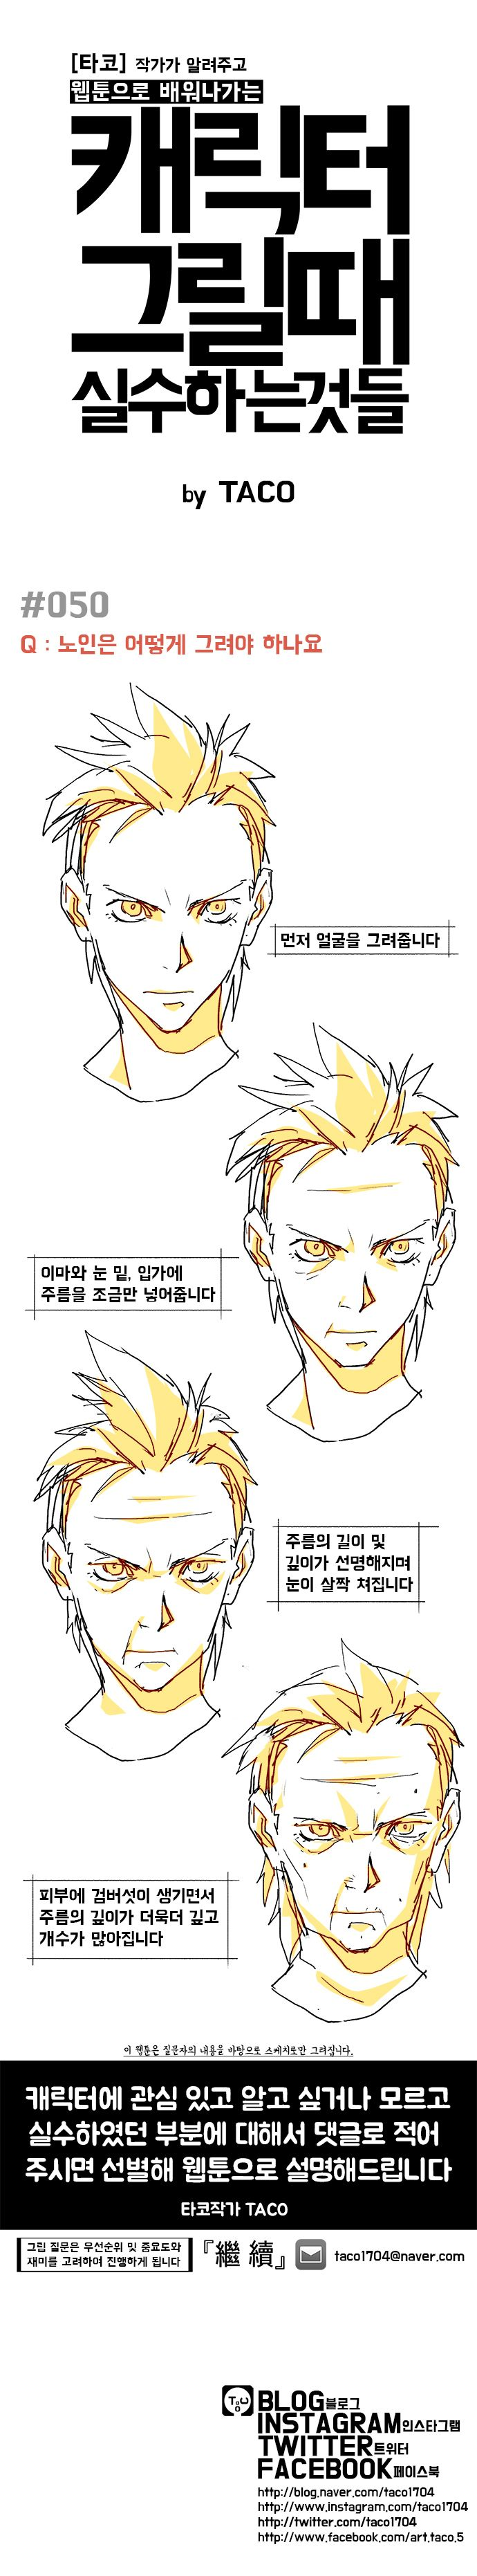 comic / manga content - How to draw an aging character - step by step tutorial - drawing reference